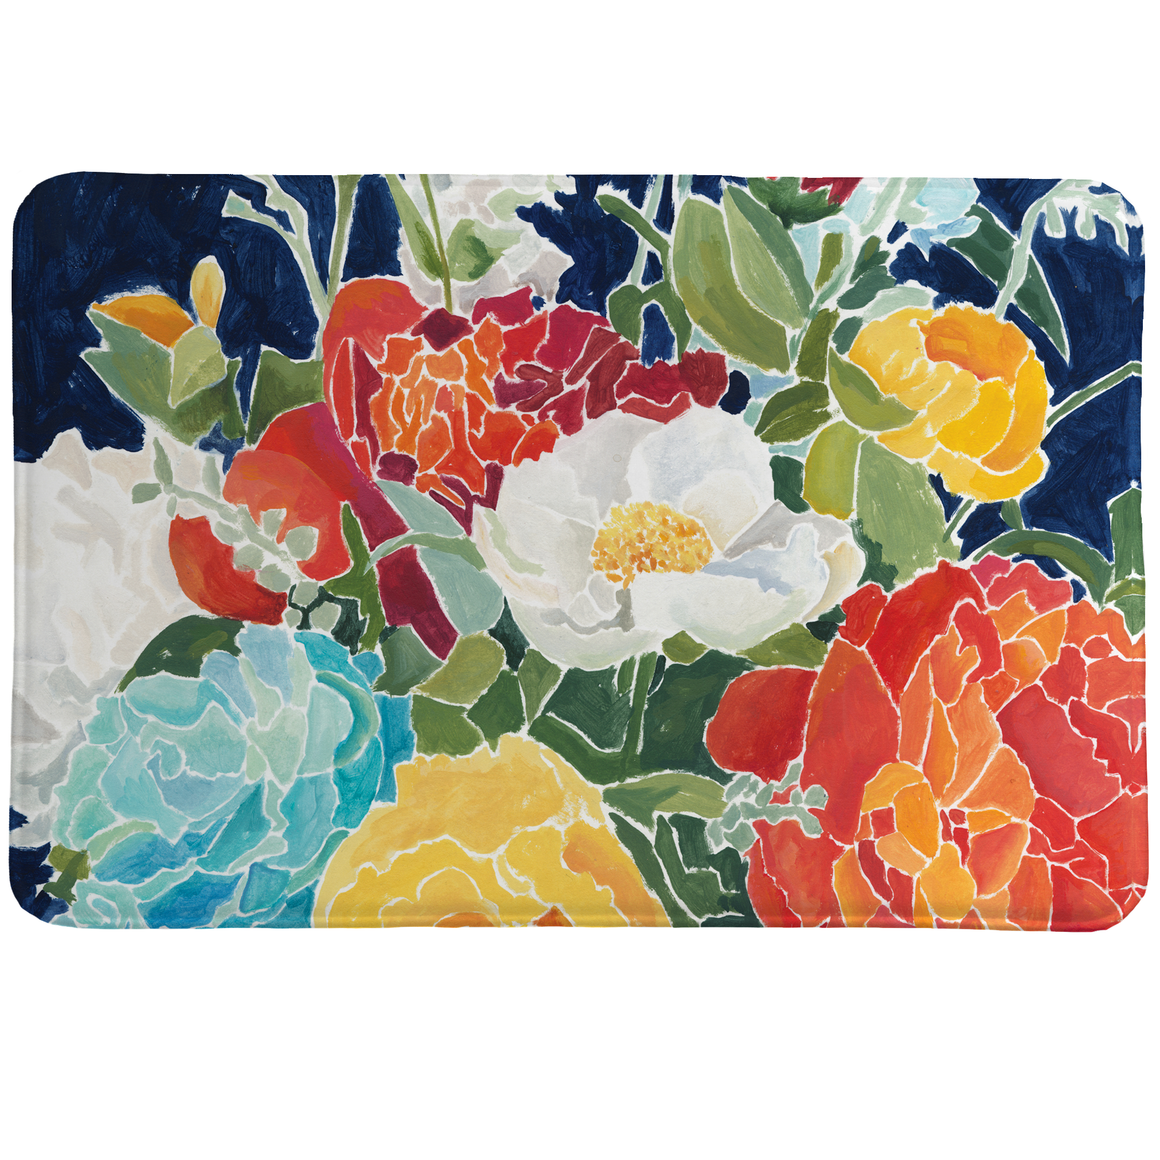 Midnight Floral Memory Foam Rug features a striking and colorful bouquet of spring's finest florals.